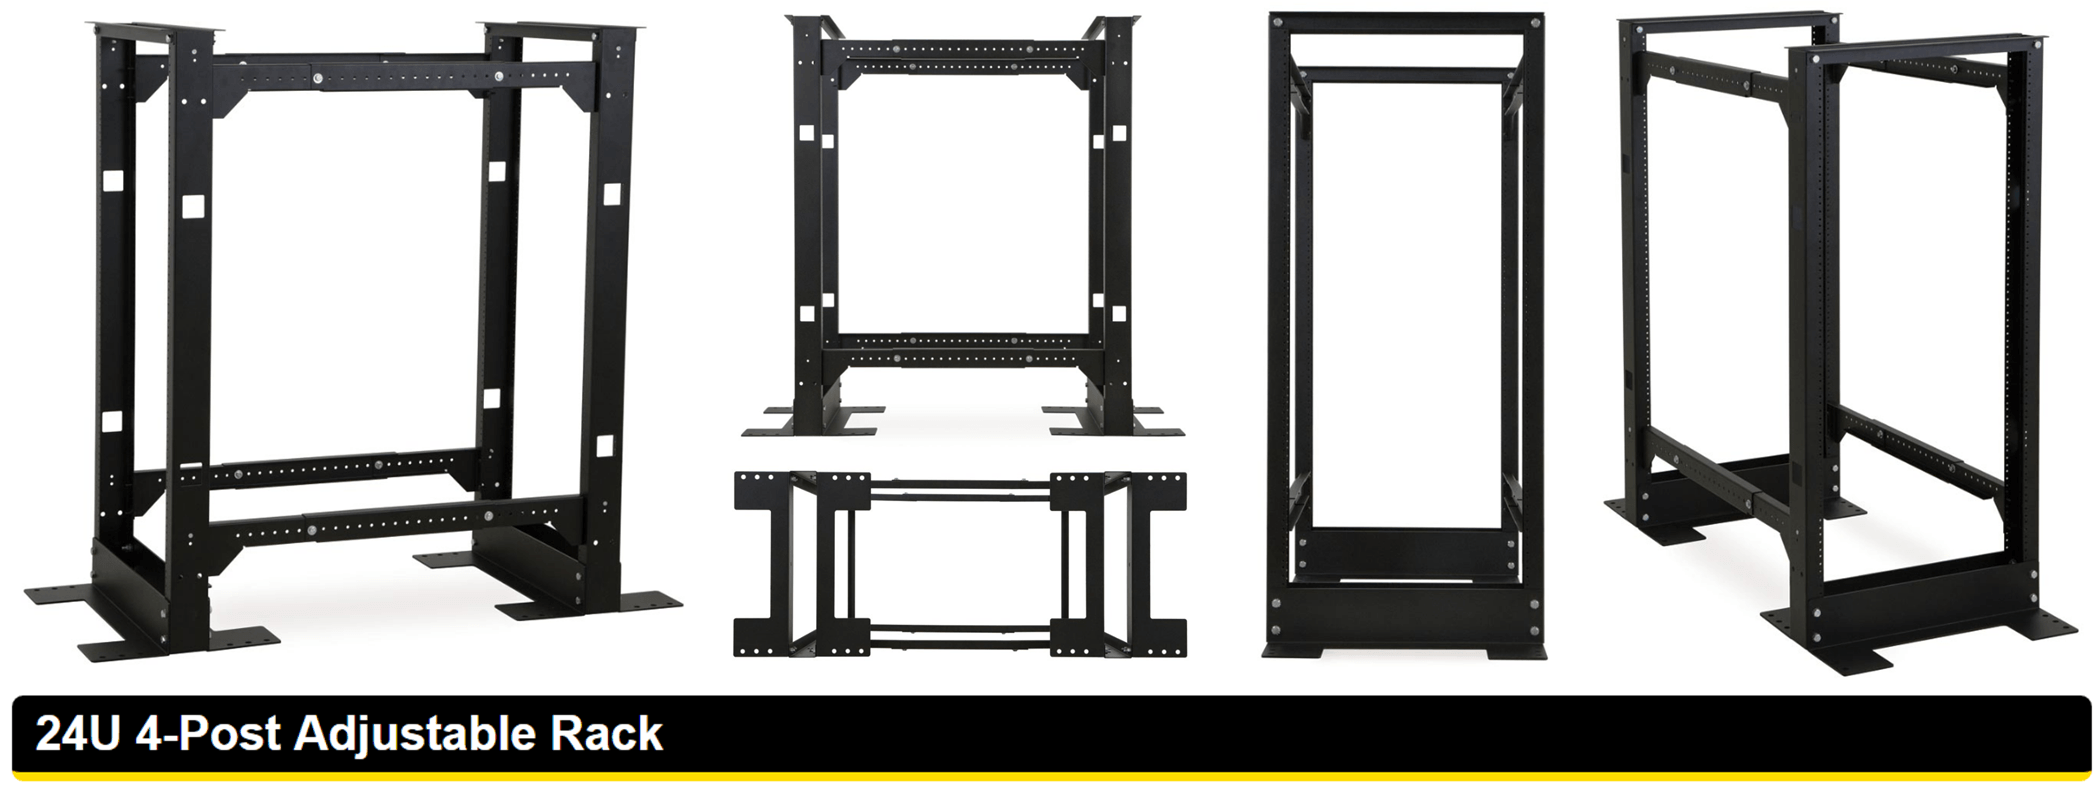 NEW 4-Post Adjustable Rack launched by Kendall Howard - 42U